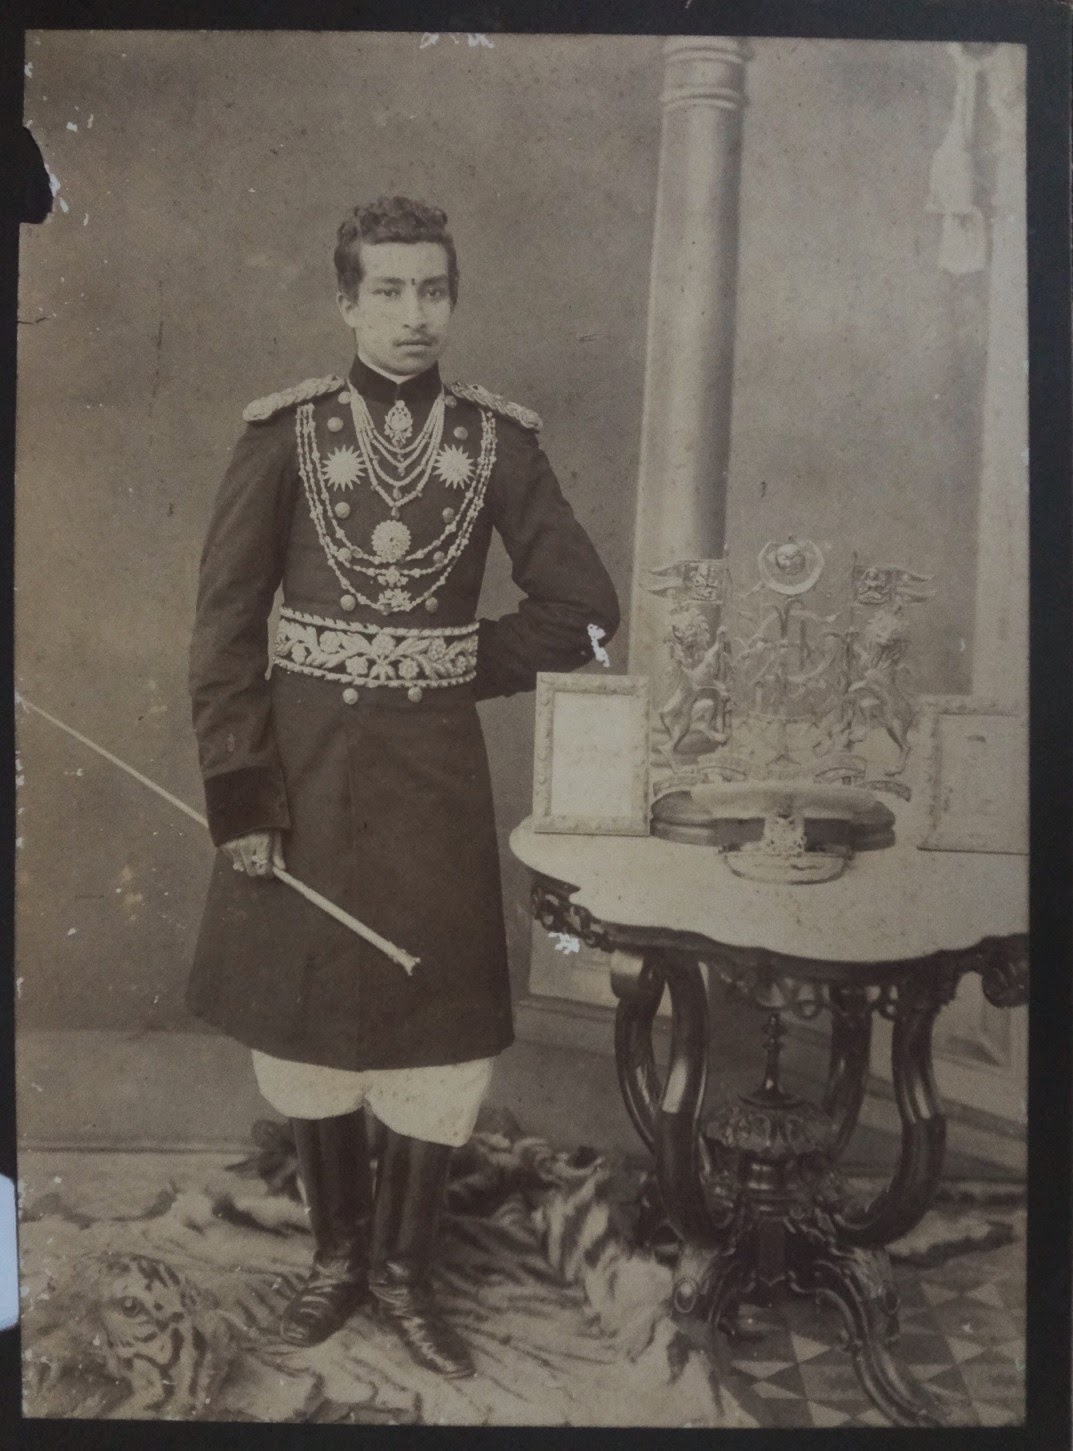 Vintage Photograph of a Nepal Prince